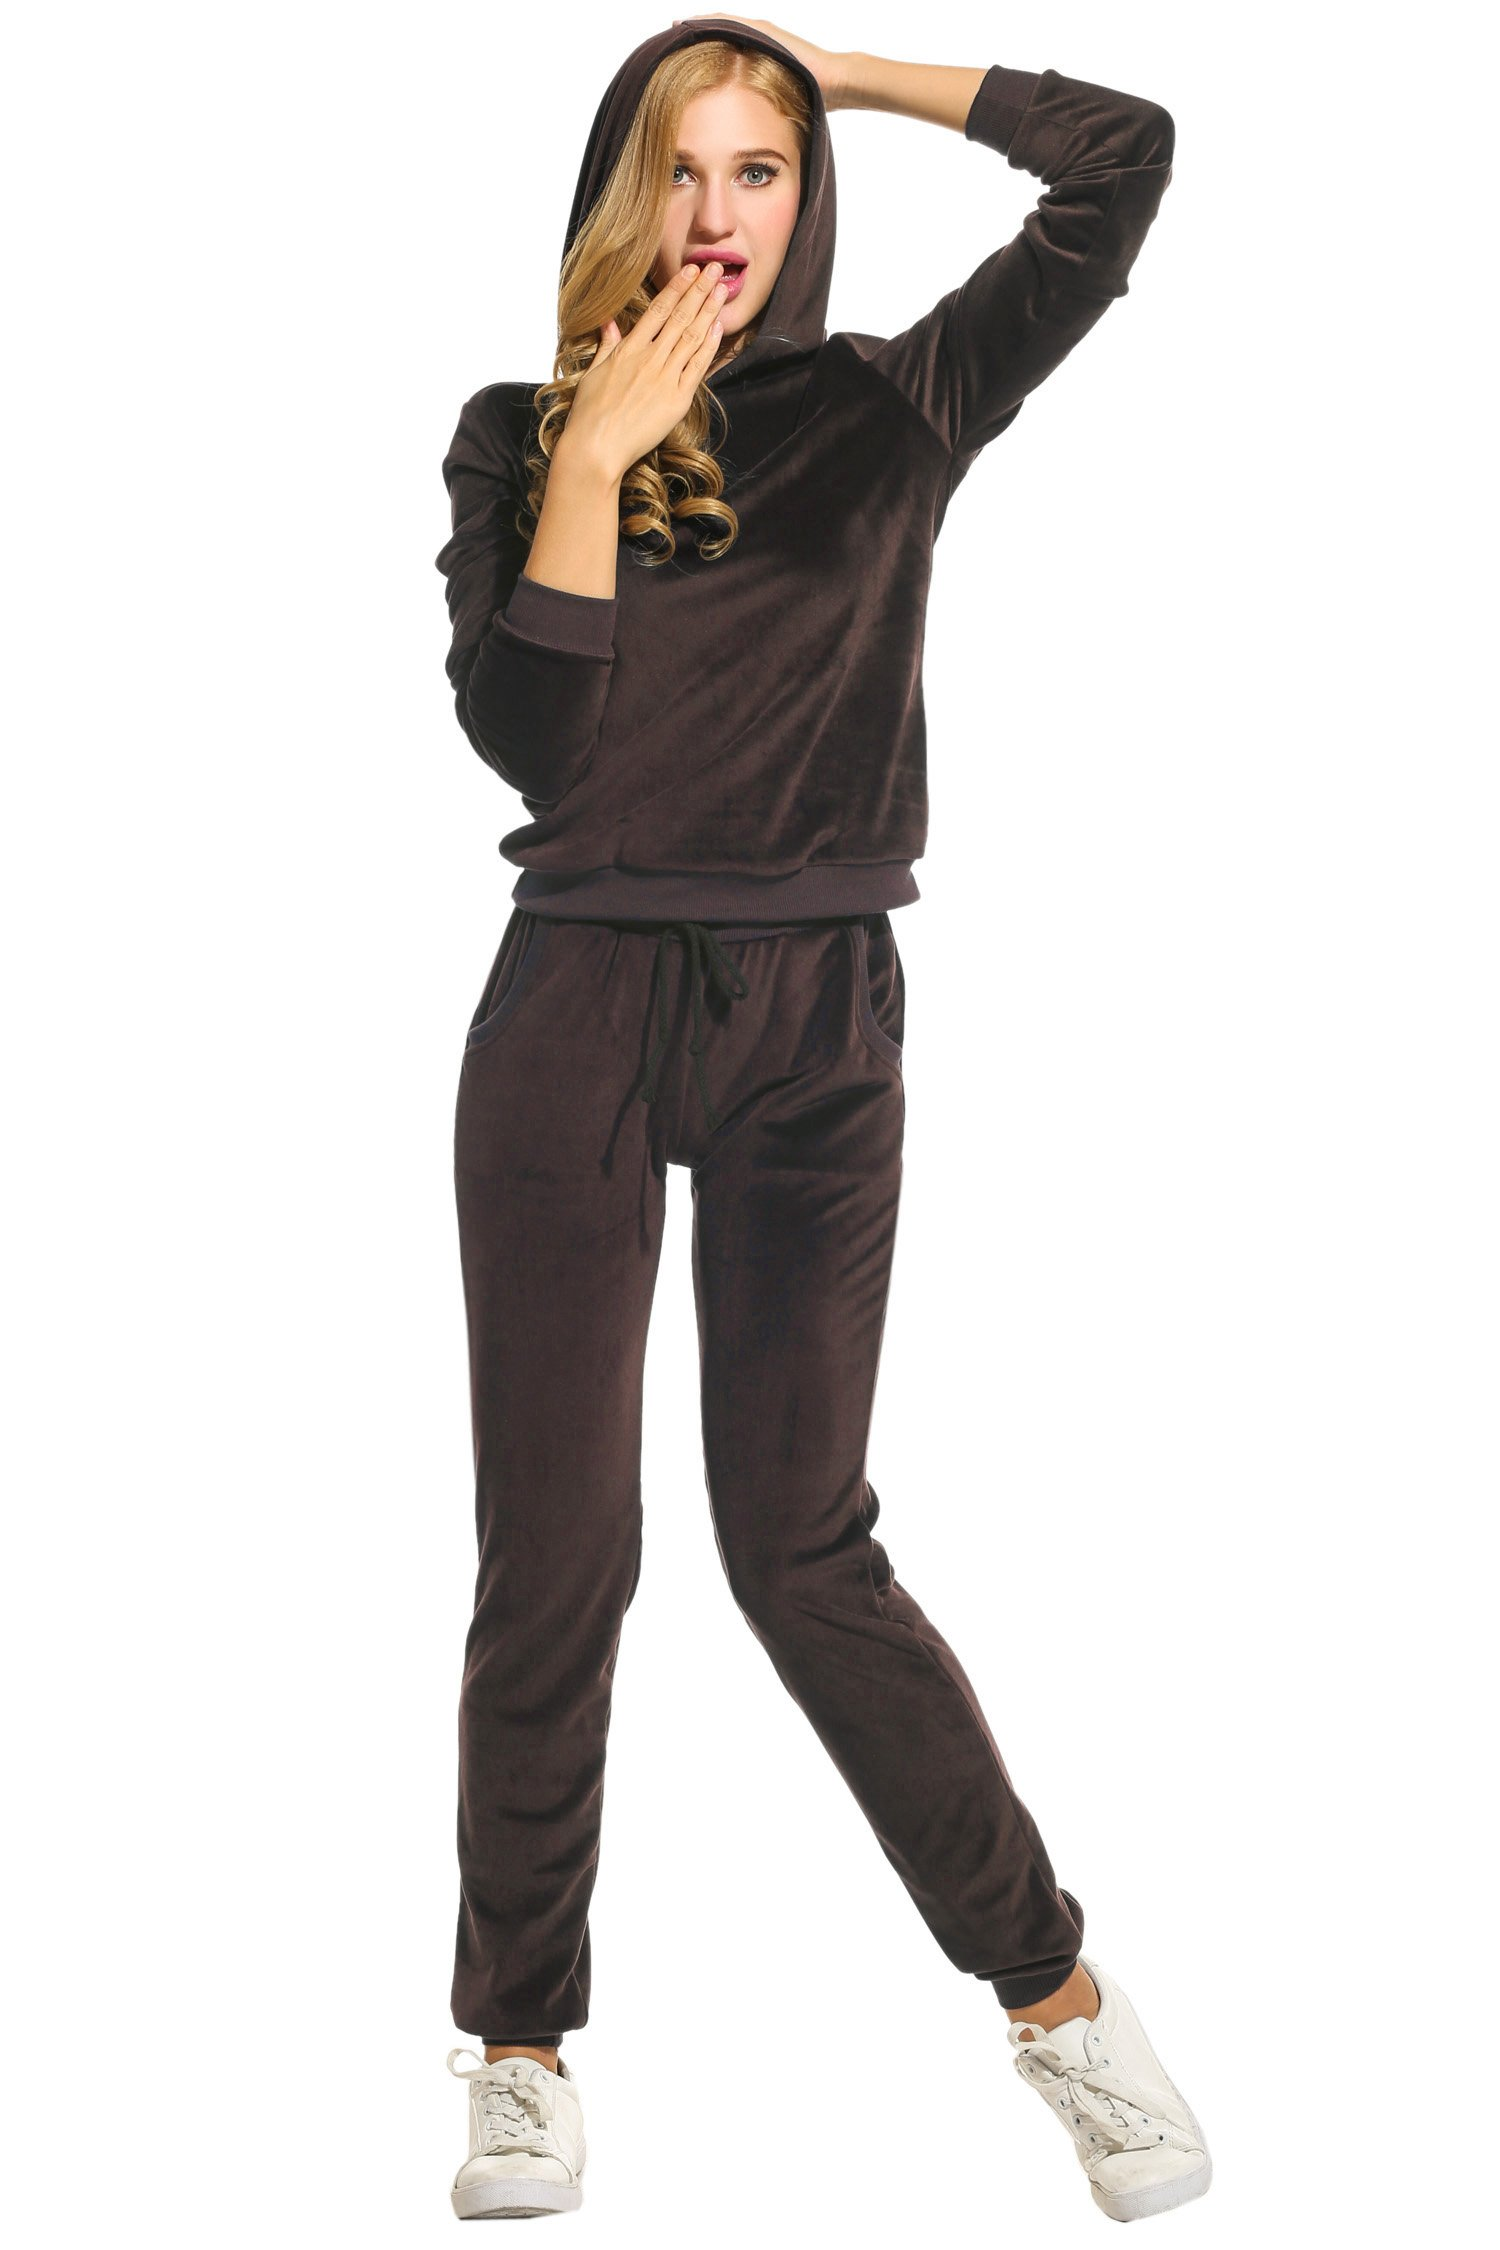 Hotouch Women's Sweatsuit Set Velour Hoodie and Track Pants Coffee L by Hotouch (Image #2)